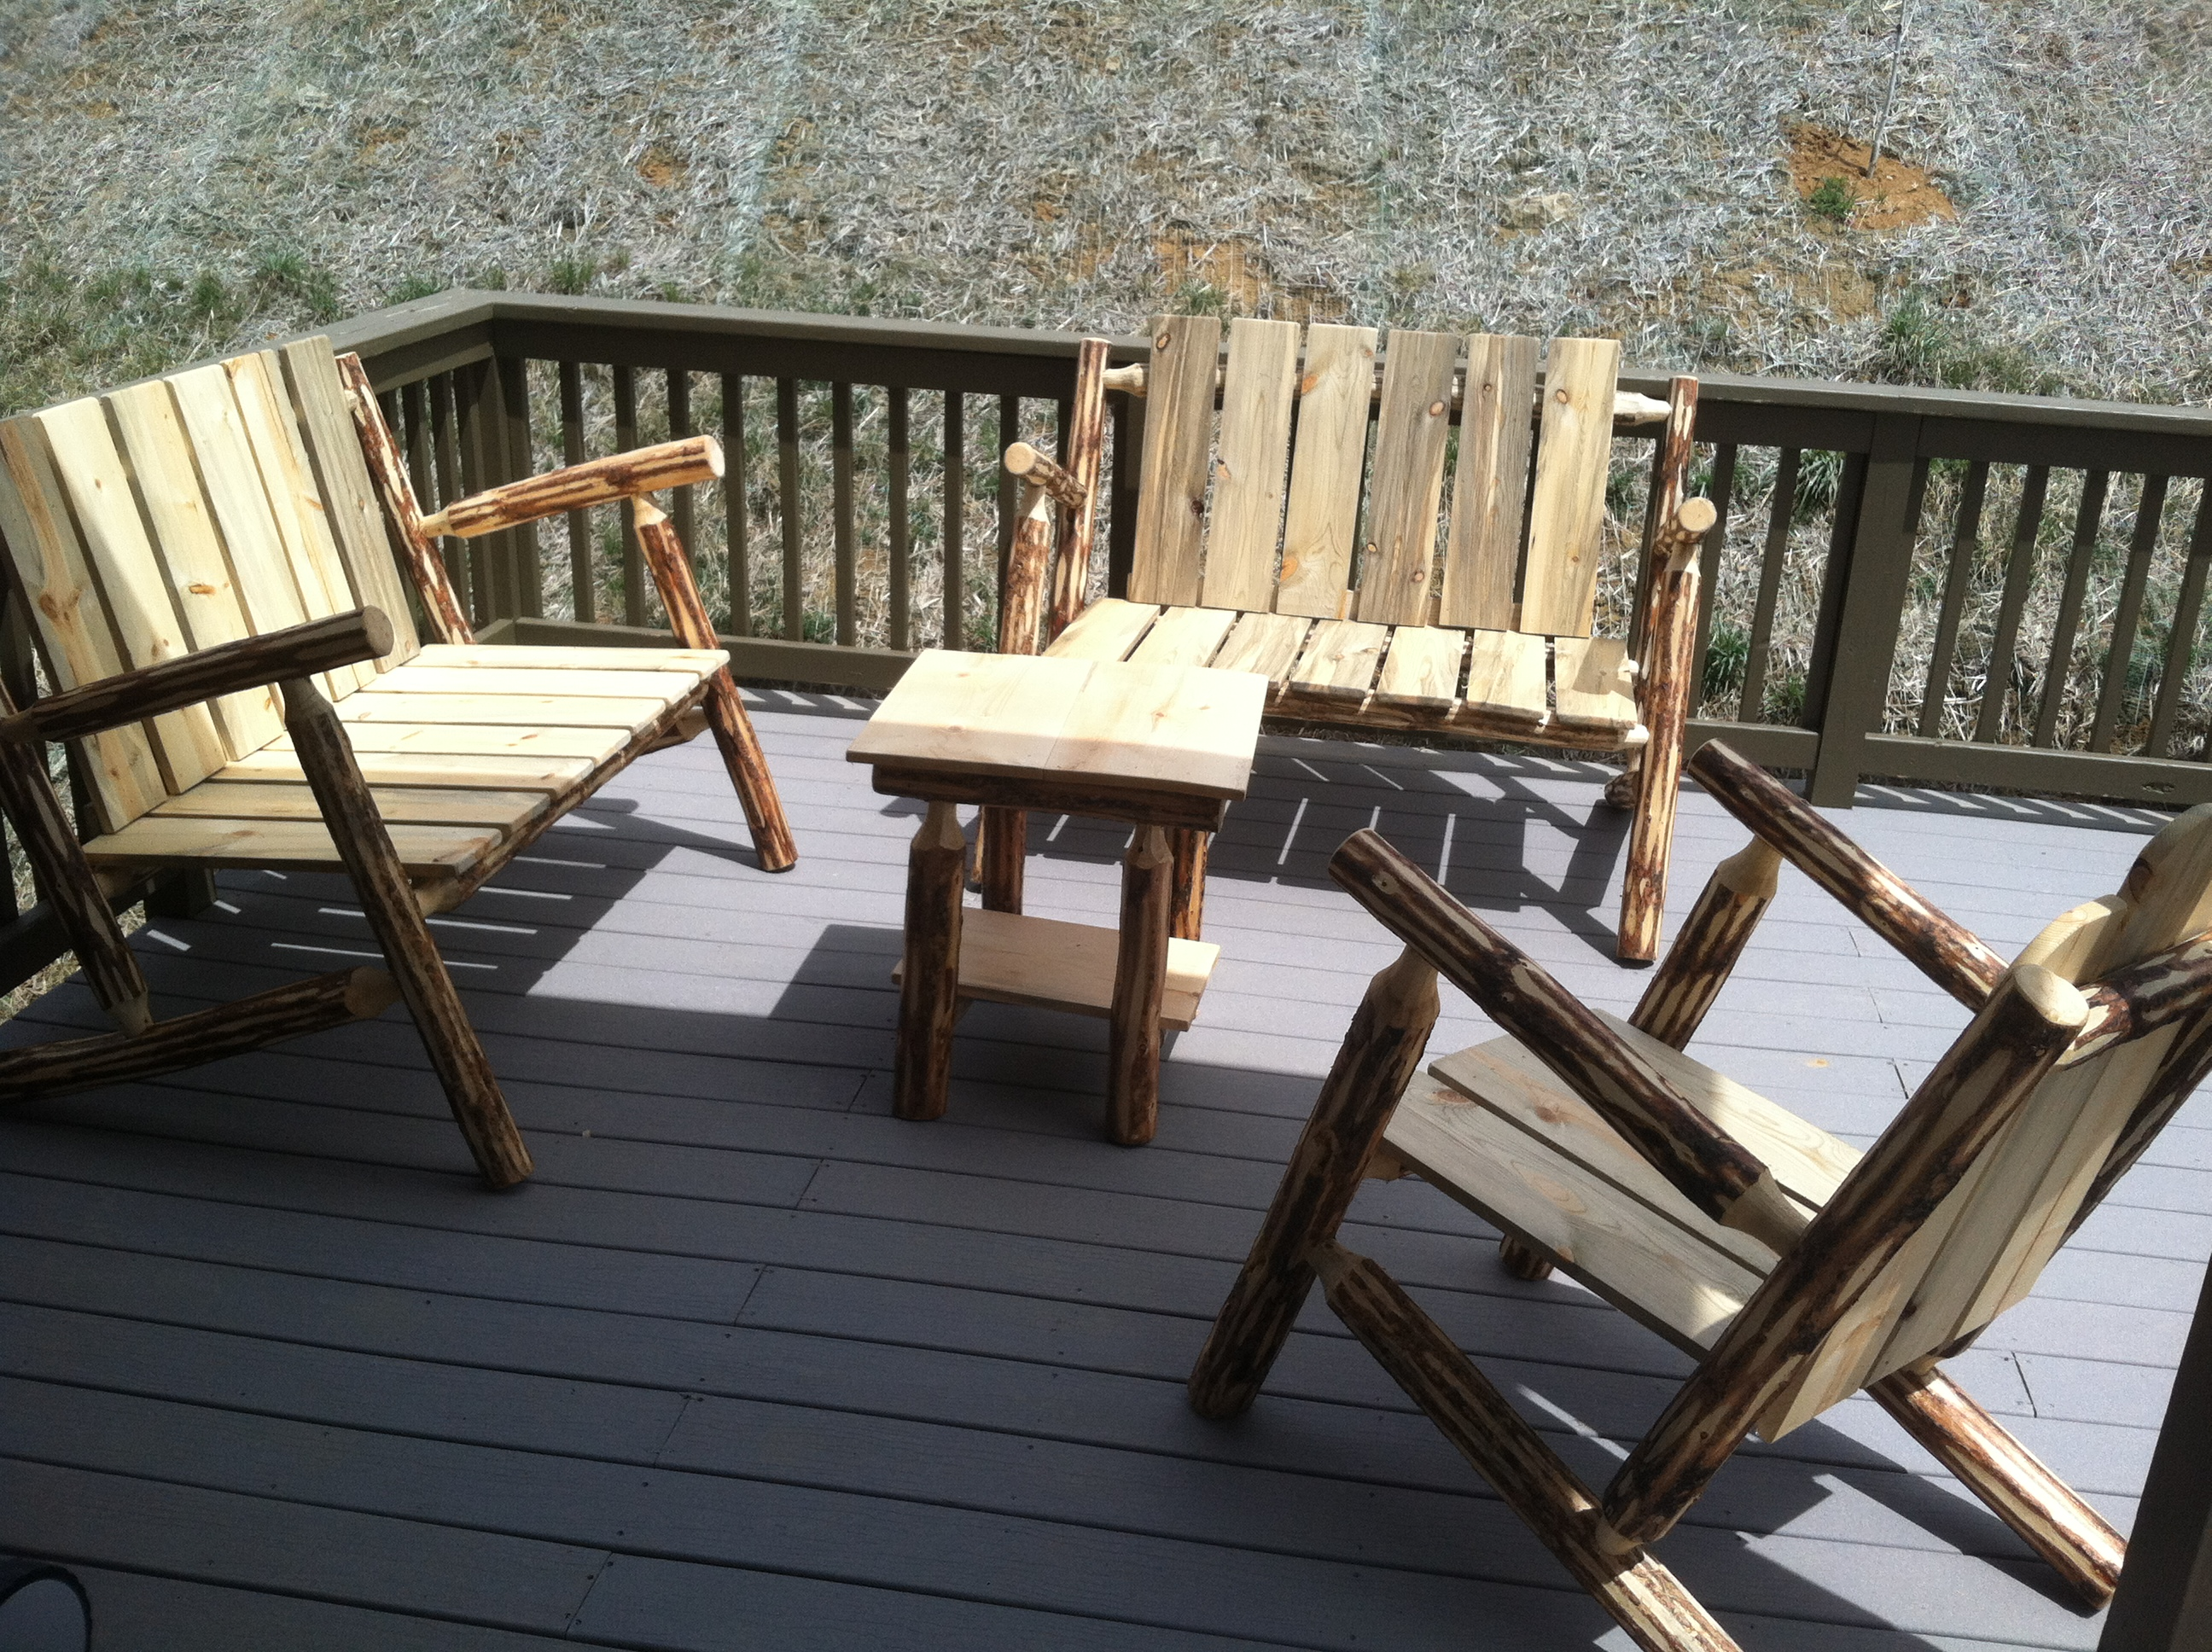 pine Adirondack chairs, lounges